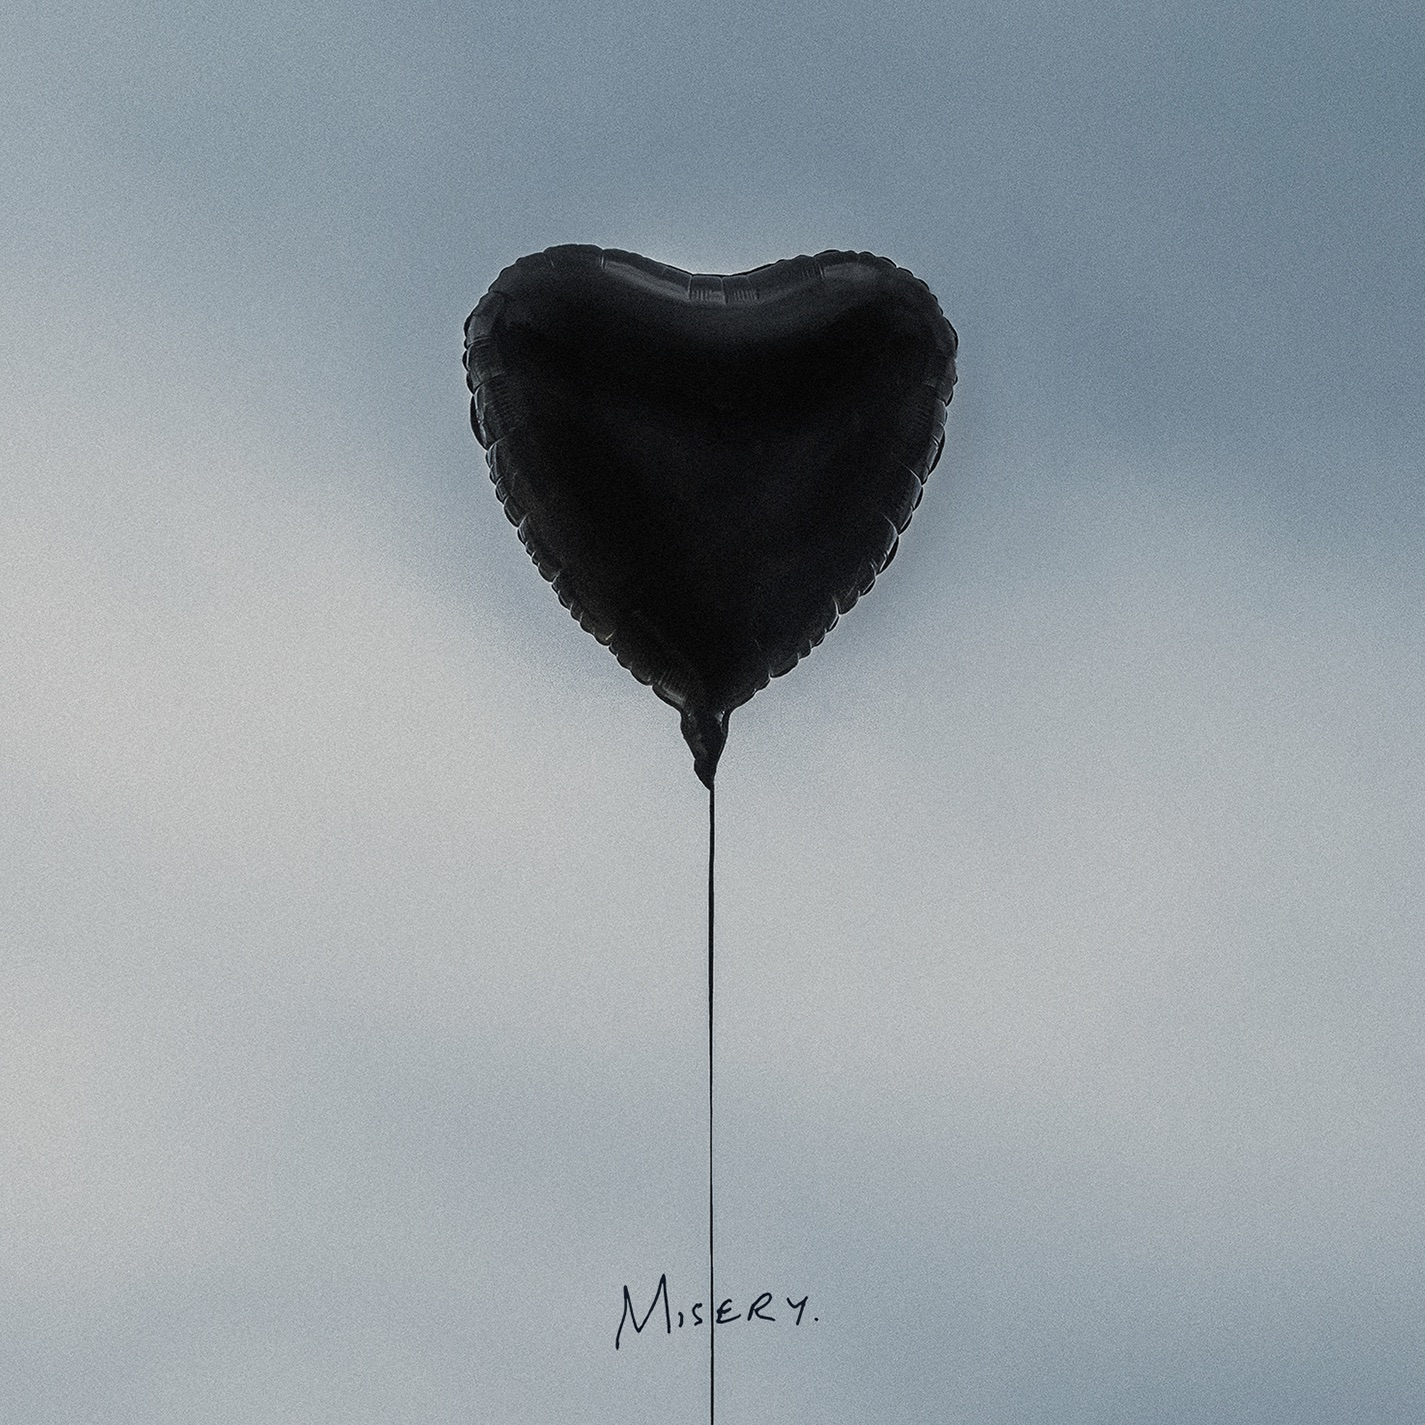 The Amity Affliction - Misery (2018)